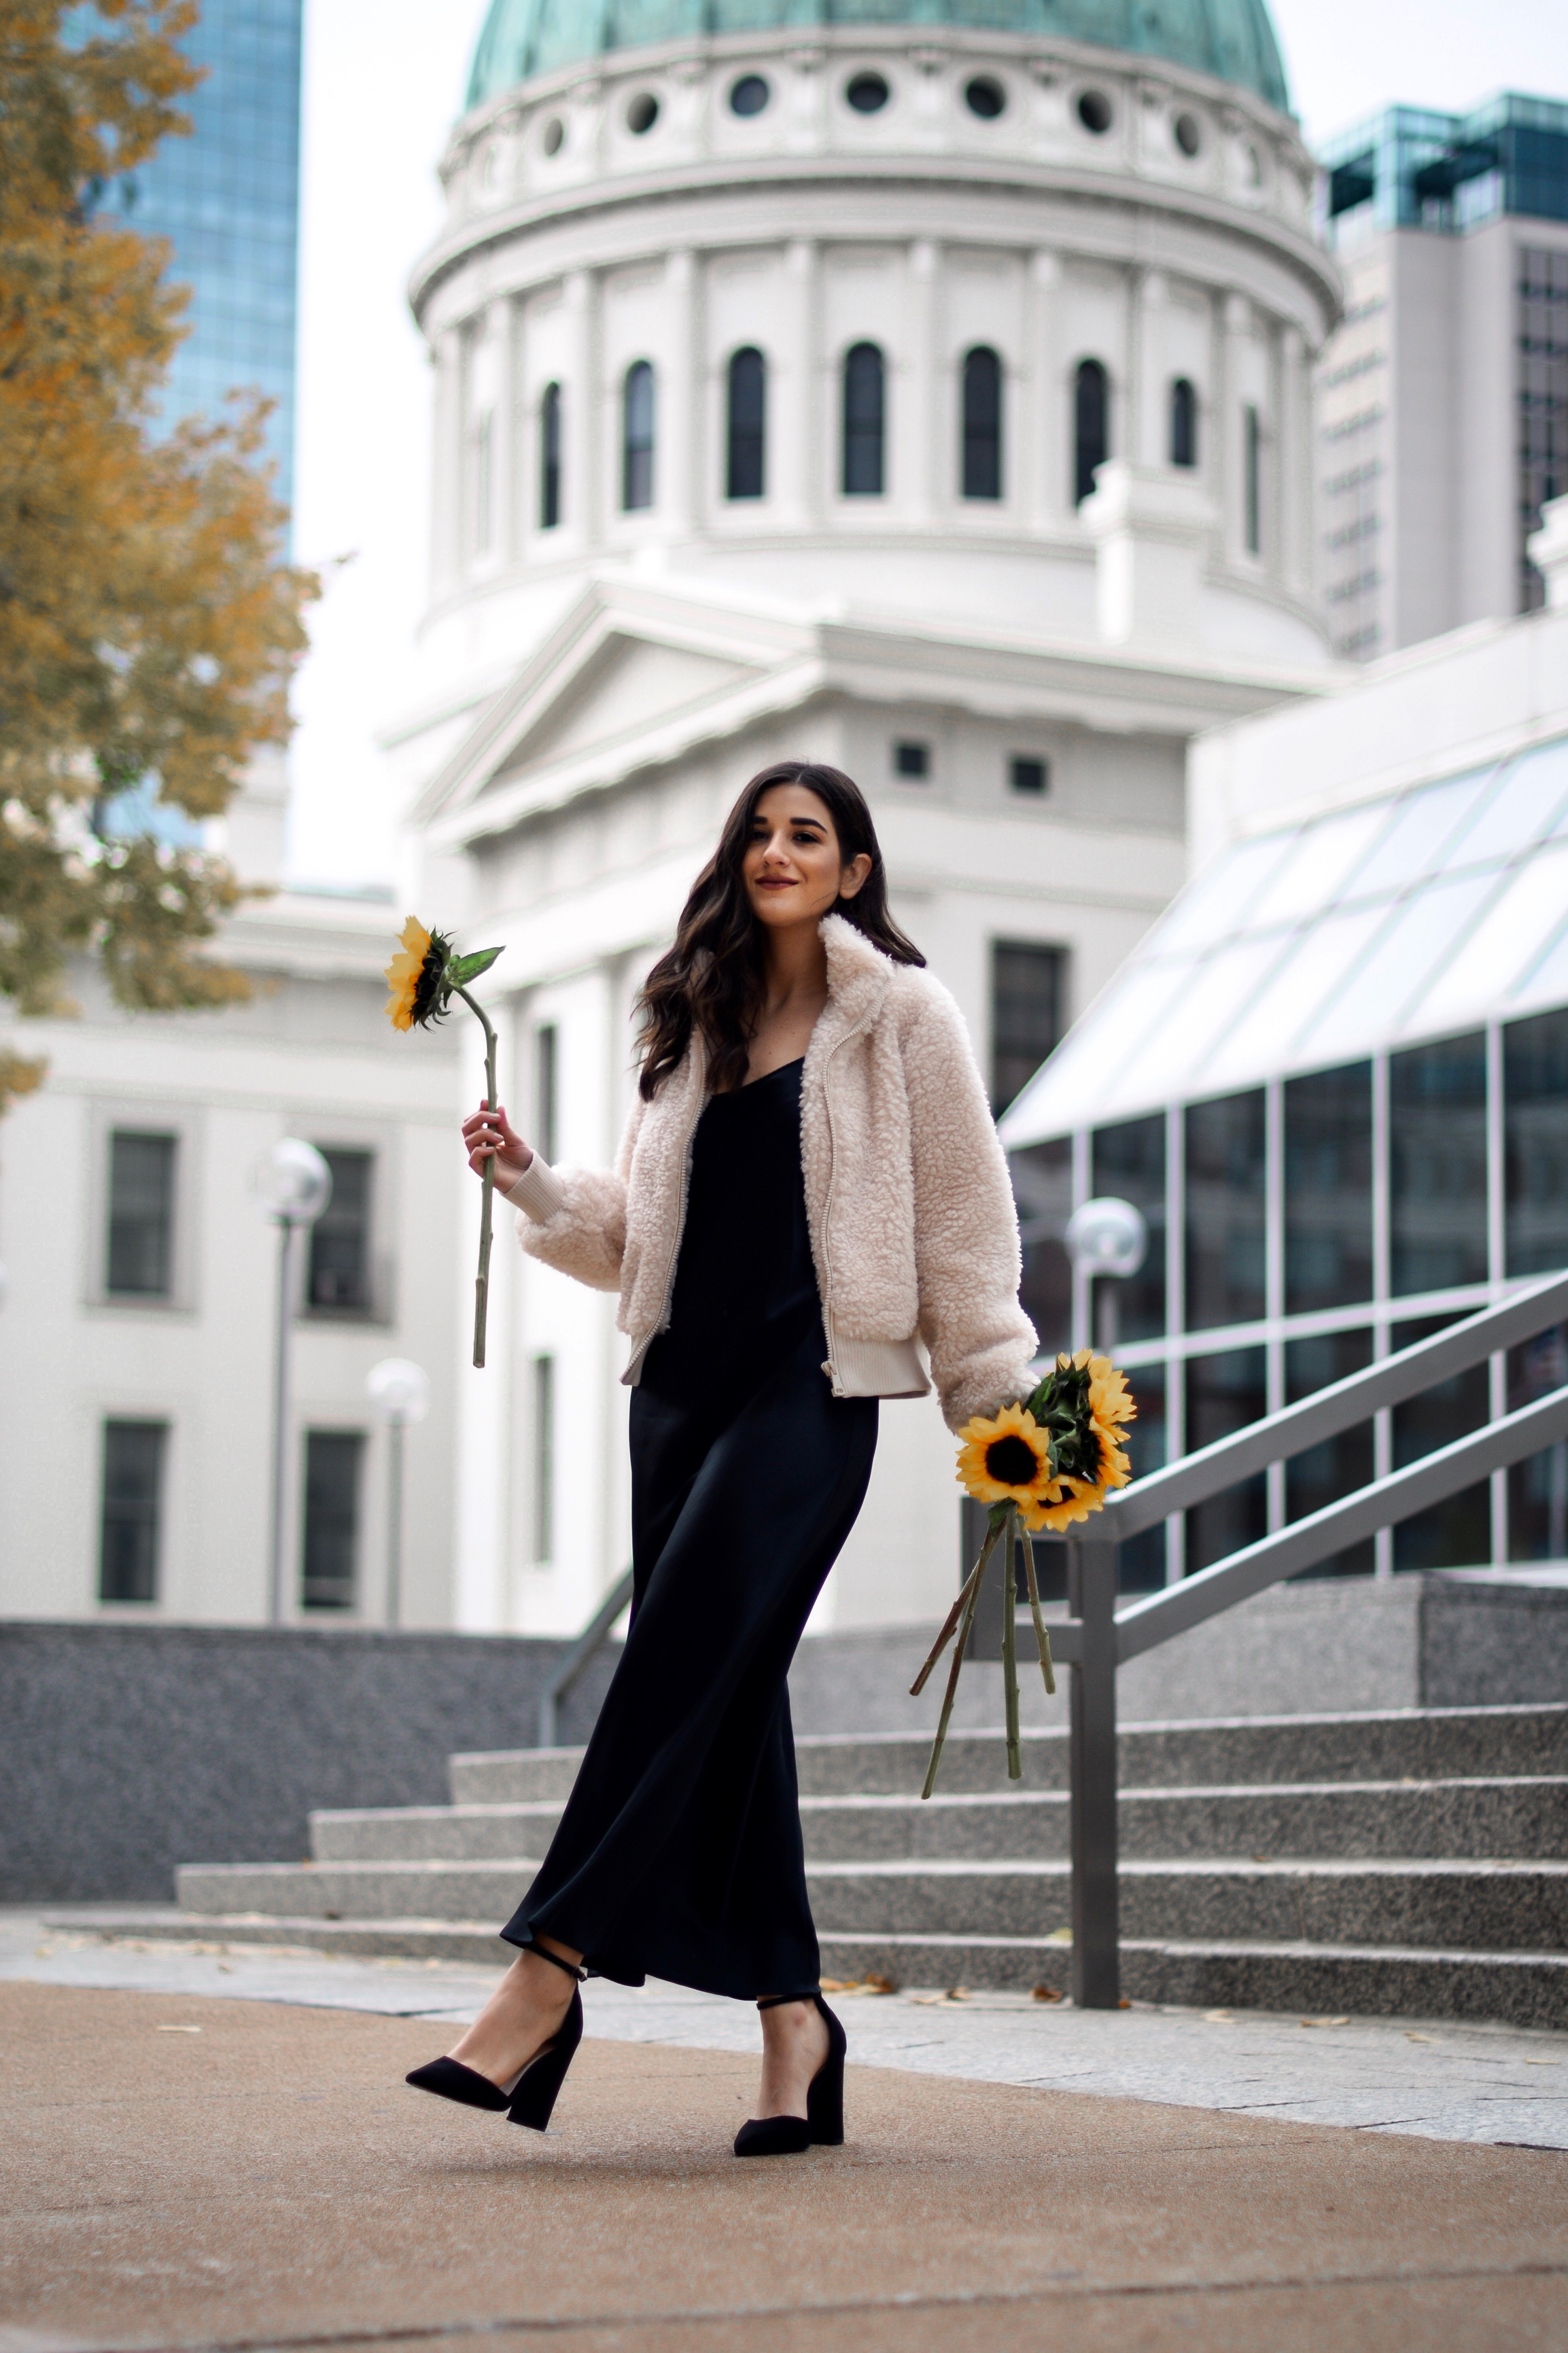 The 10 Most Frustrating Parts Of Brand Collabs Long Black Slip Dress Shearling Jacket Esther Santer Fashion Blog NYC Street Style Blogger Outfit OOTD Trendy Shopping St. Louis Photoshoot Hometown  Downtown Saint Louis Sunflowers Yellow Flowers Heels.jpg